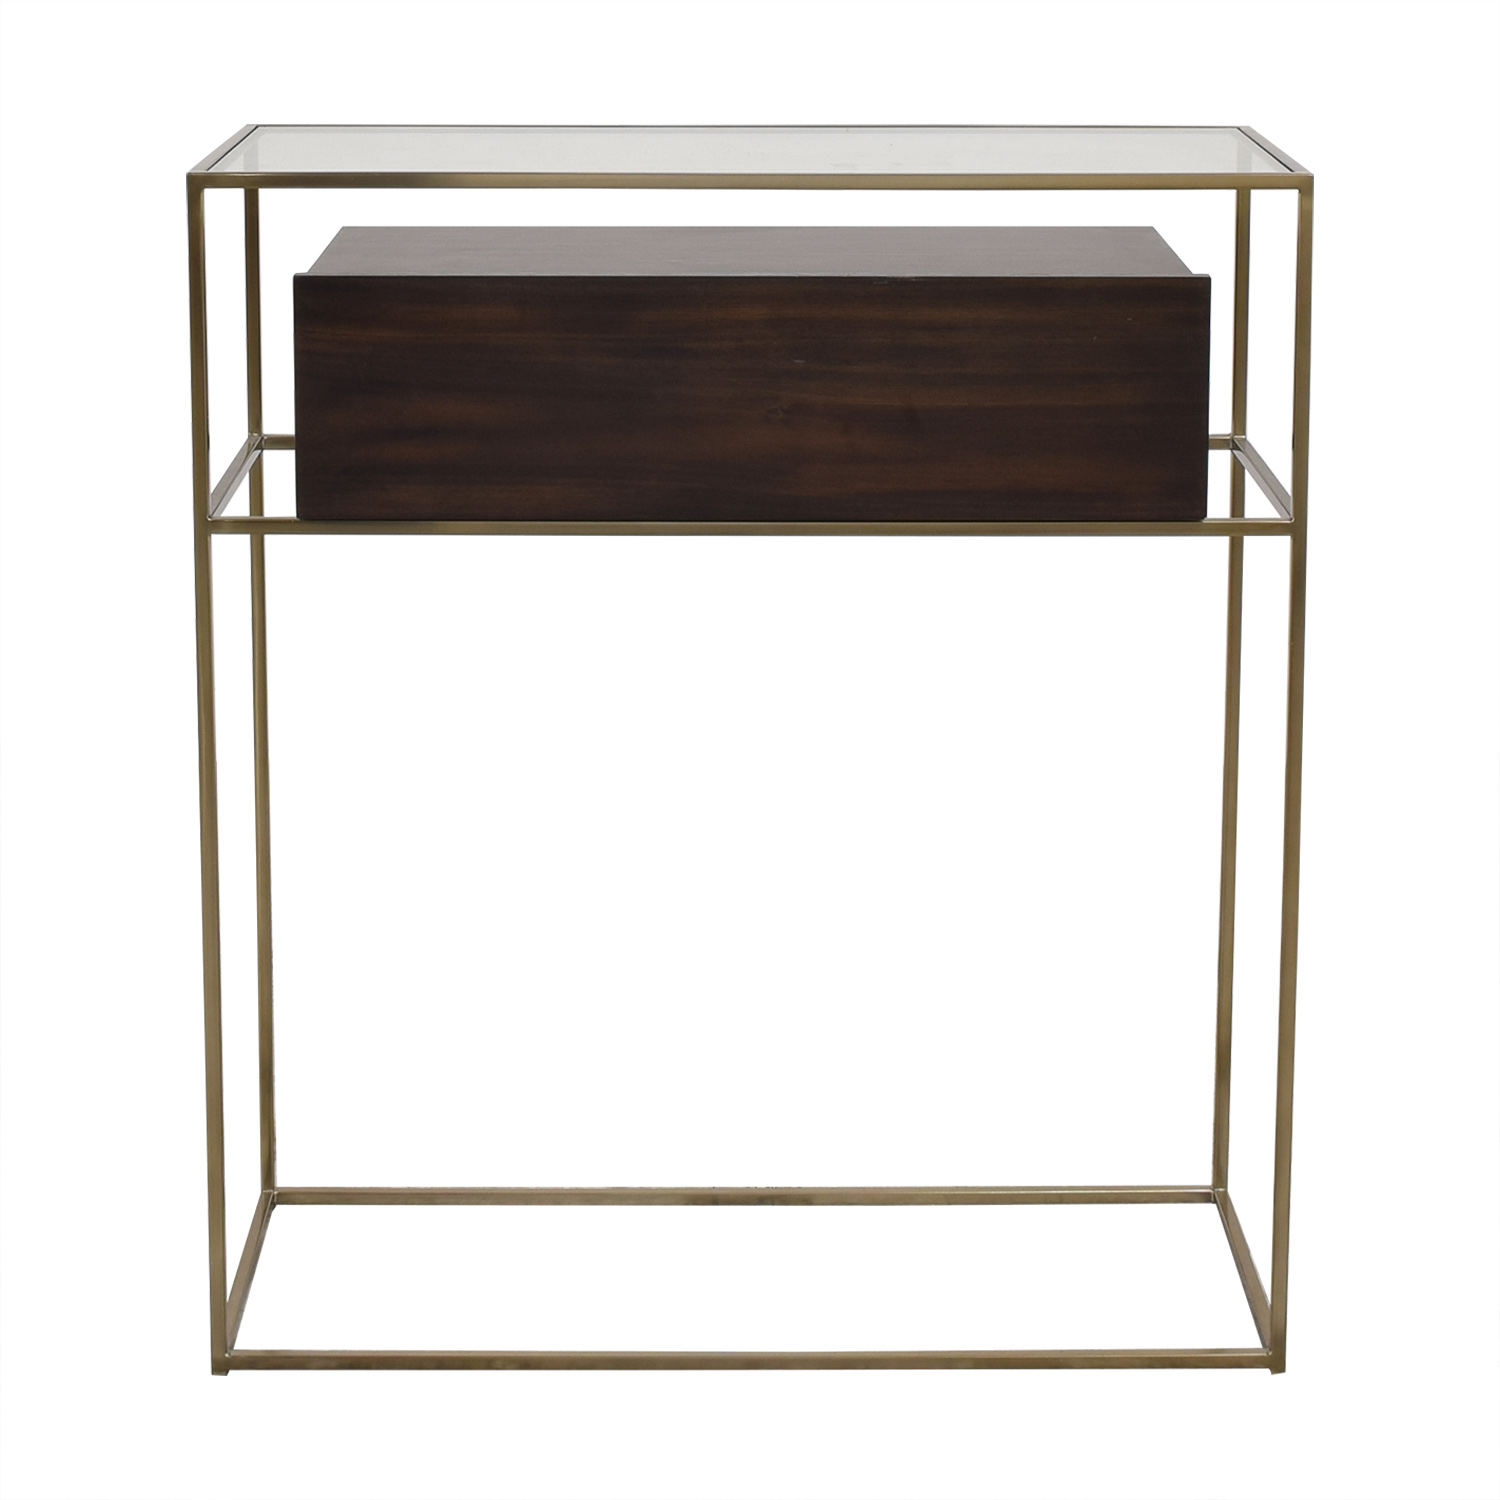 CB2 CB2 Modern Storage Drawer Accent Tables